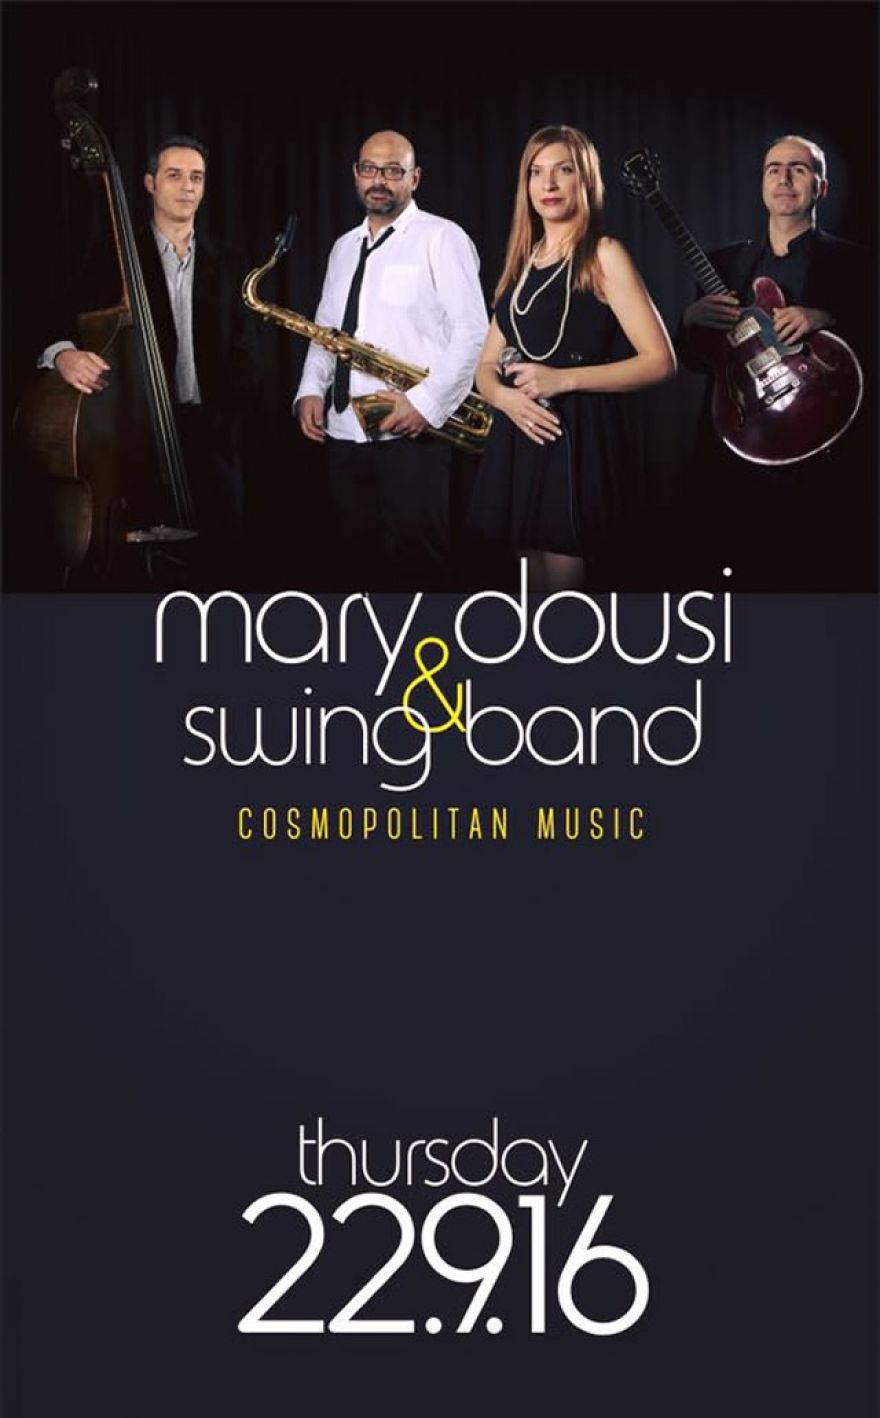 Mairy Dousi & Swing band την Πέμπτη 22/9 στο Coctail Pairing ΒΟΛΤΑ!